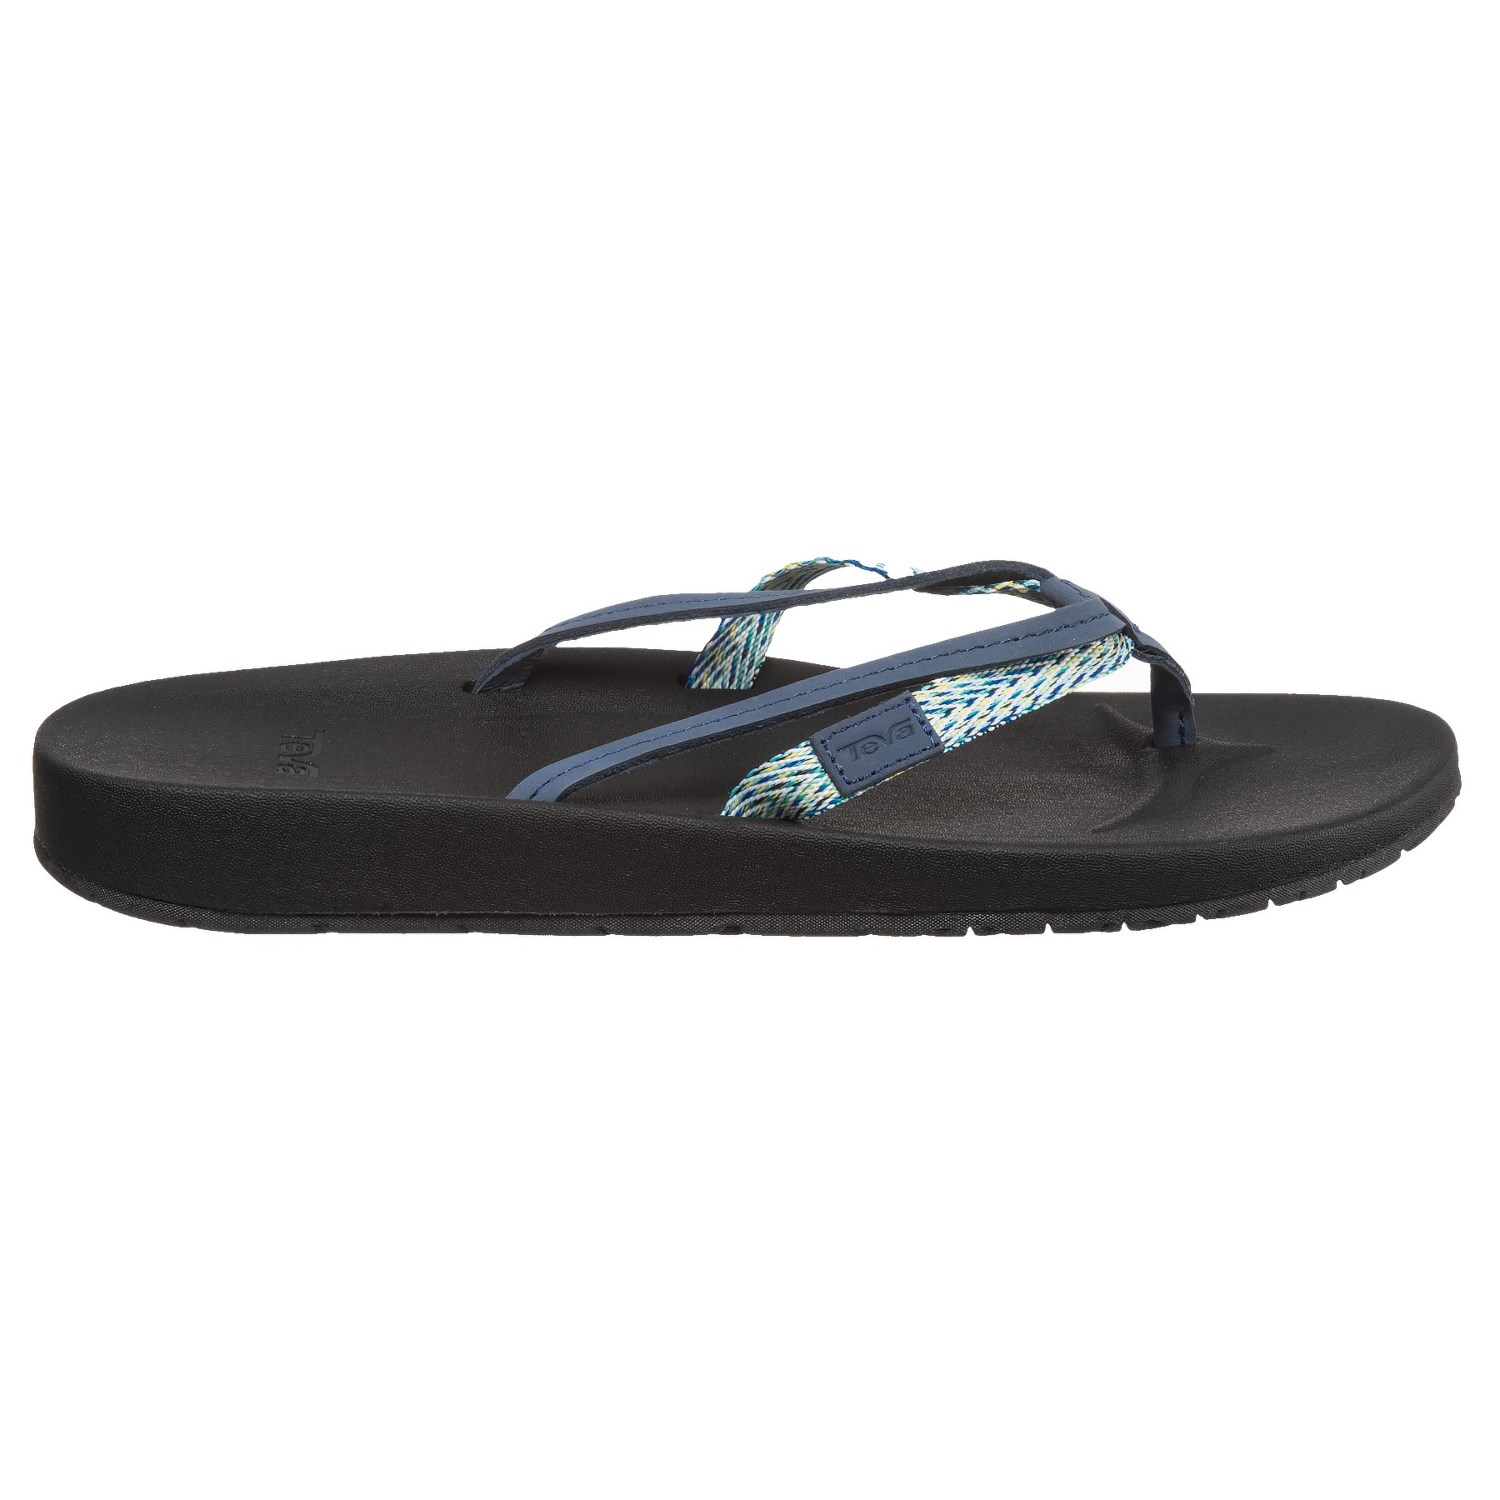 041f9e38b Teva Azure 2-Strap Flip-Flops (For Women) - Save 62%